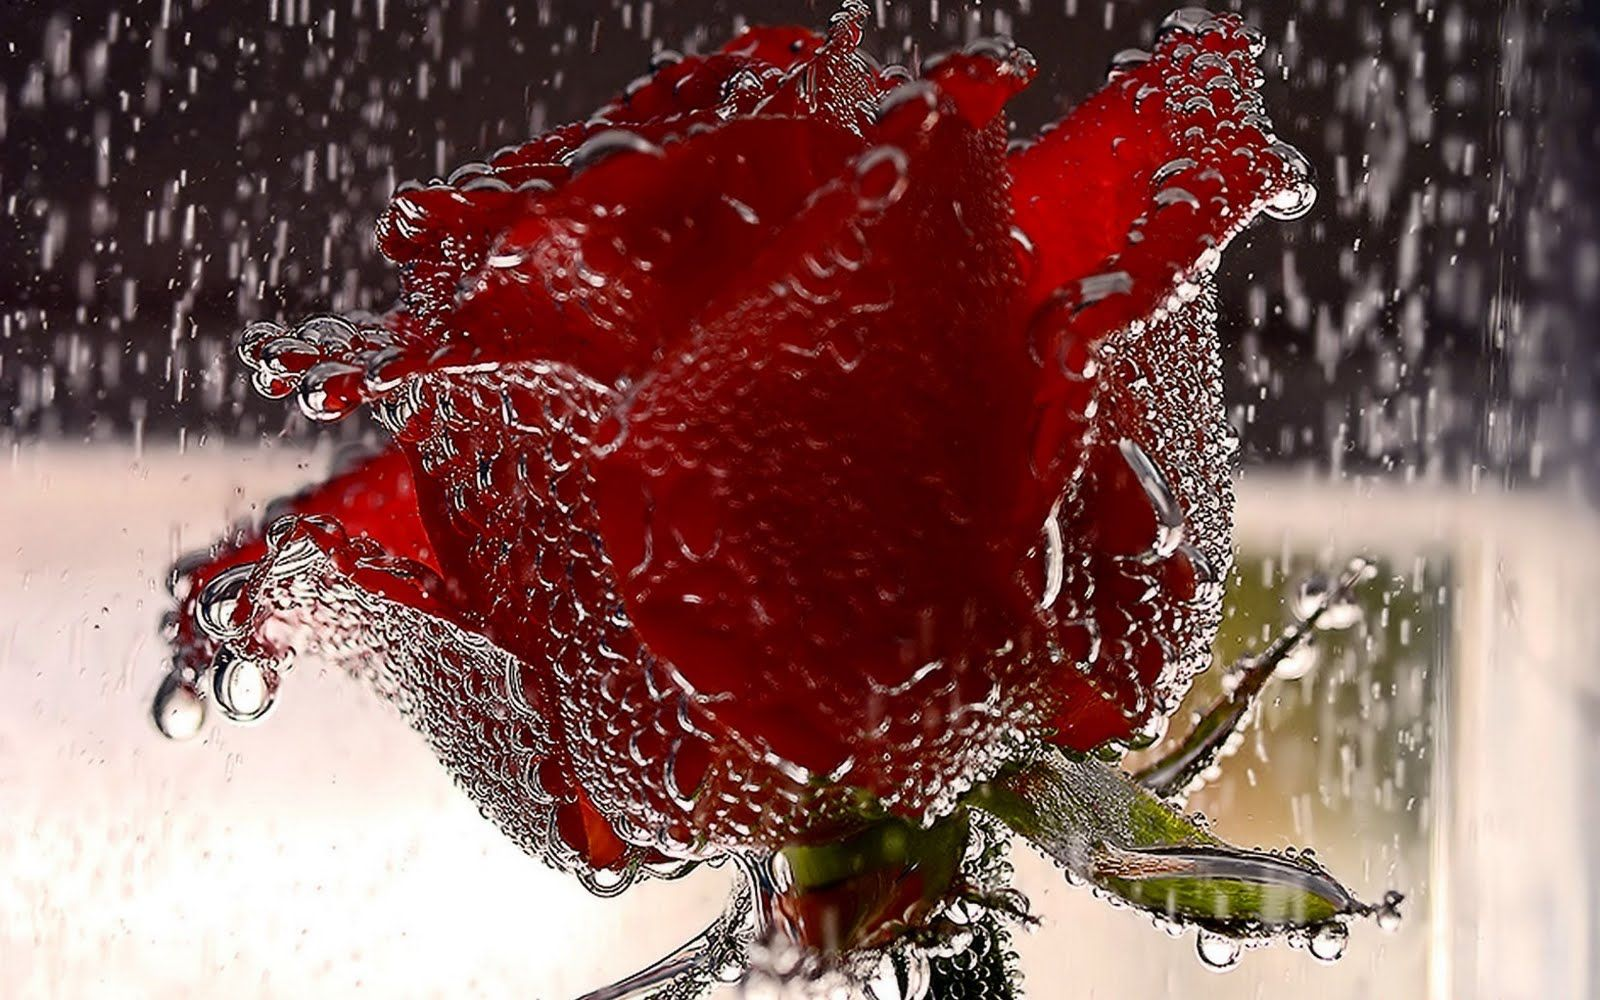 The Most Beautiful Flower Wallpapers Of The World In The Rain